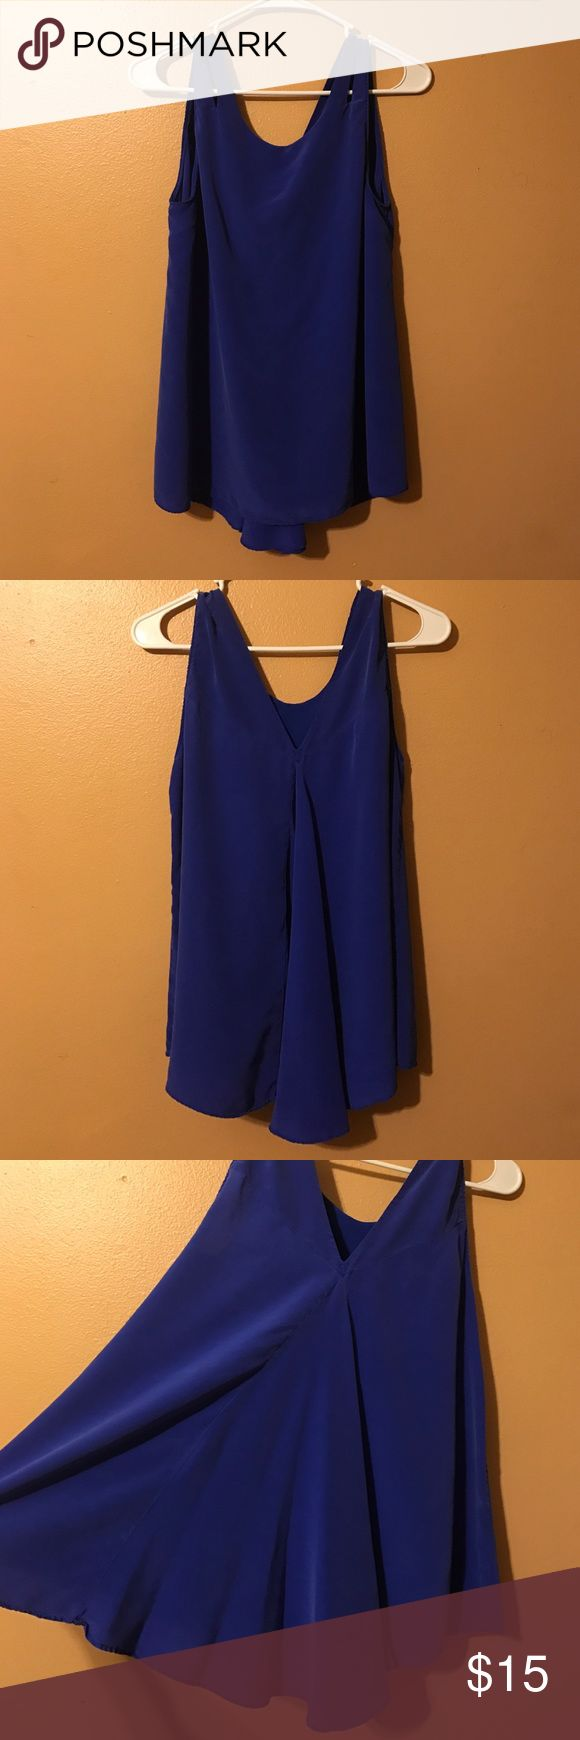 Royal blue blouse Royal blue blouse in size medium. The front is a higher fit and the back comes down in a V below the shoulder blades. Very very soft material and double lined (shear material on the inside) it fits a little tighter under the arms on me, so it would definitely fit a woman with smaller arms. No discoloration or rips. The straps on the shoulders are two separate pieces but are sewed together (pictured). 100% silk and the inside is 100% polyester. charlie jade Tops Blouses